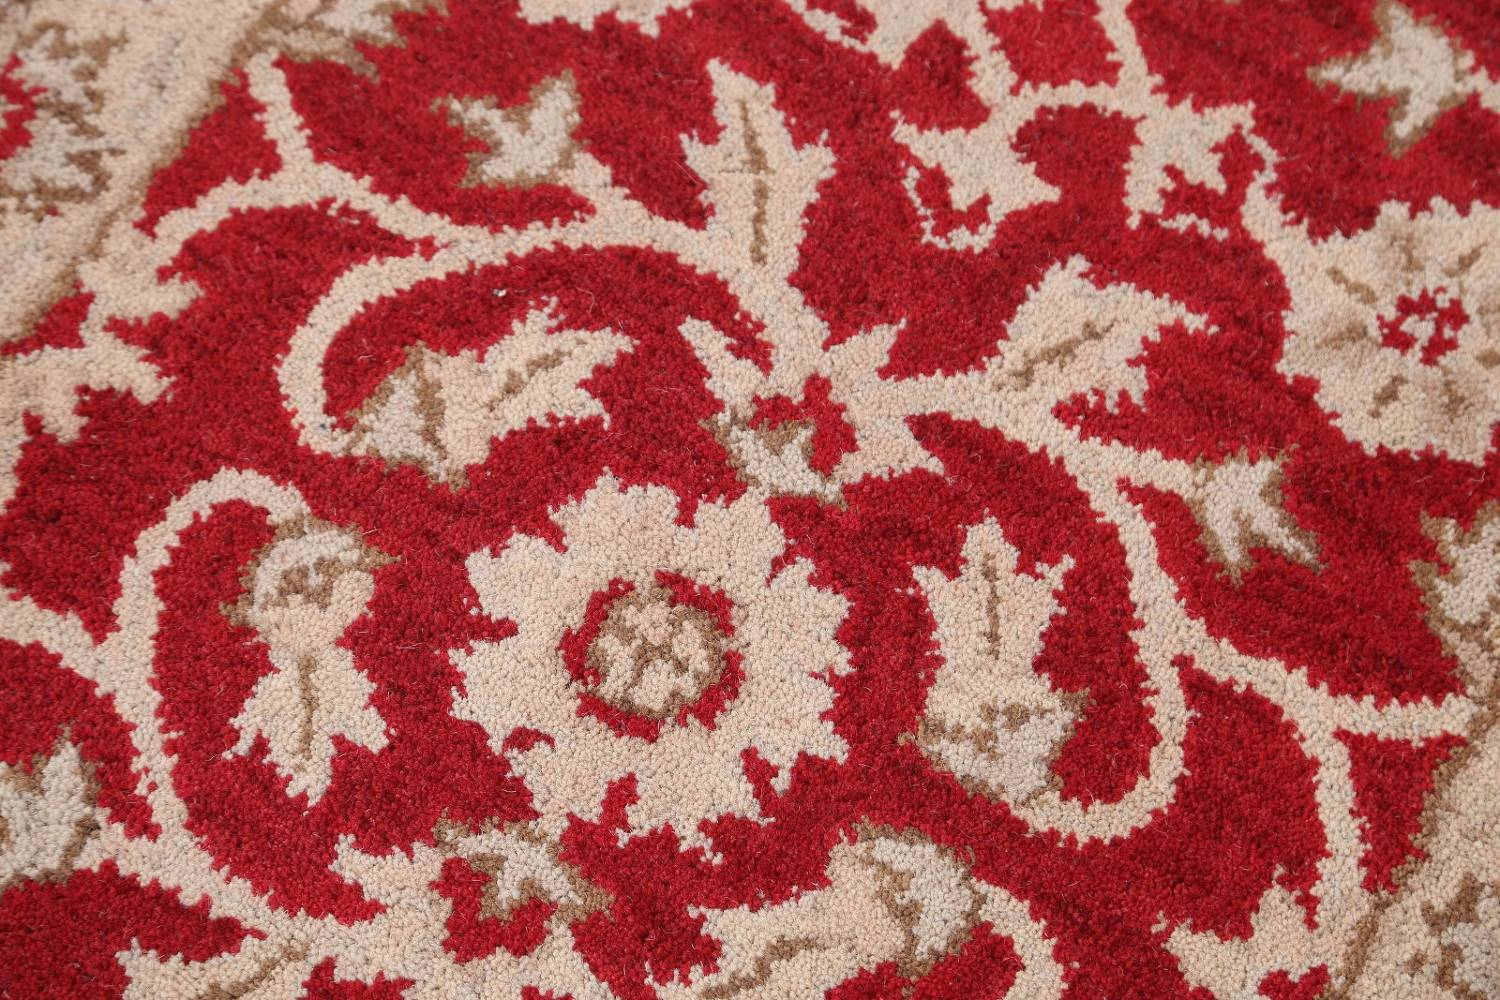 All-Over Floral Red Oushak Agra Oriental Area Rug image 3